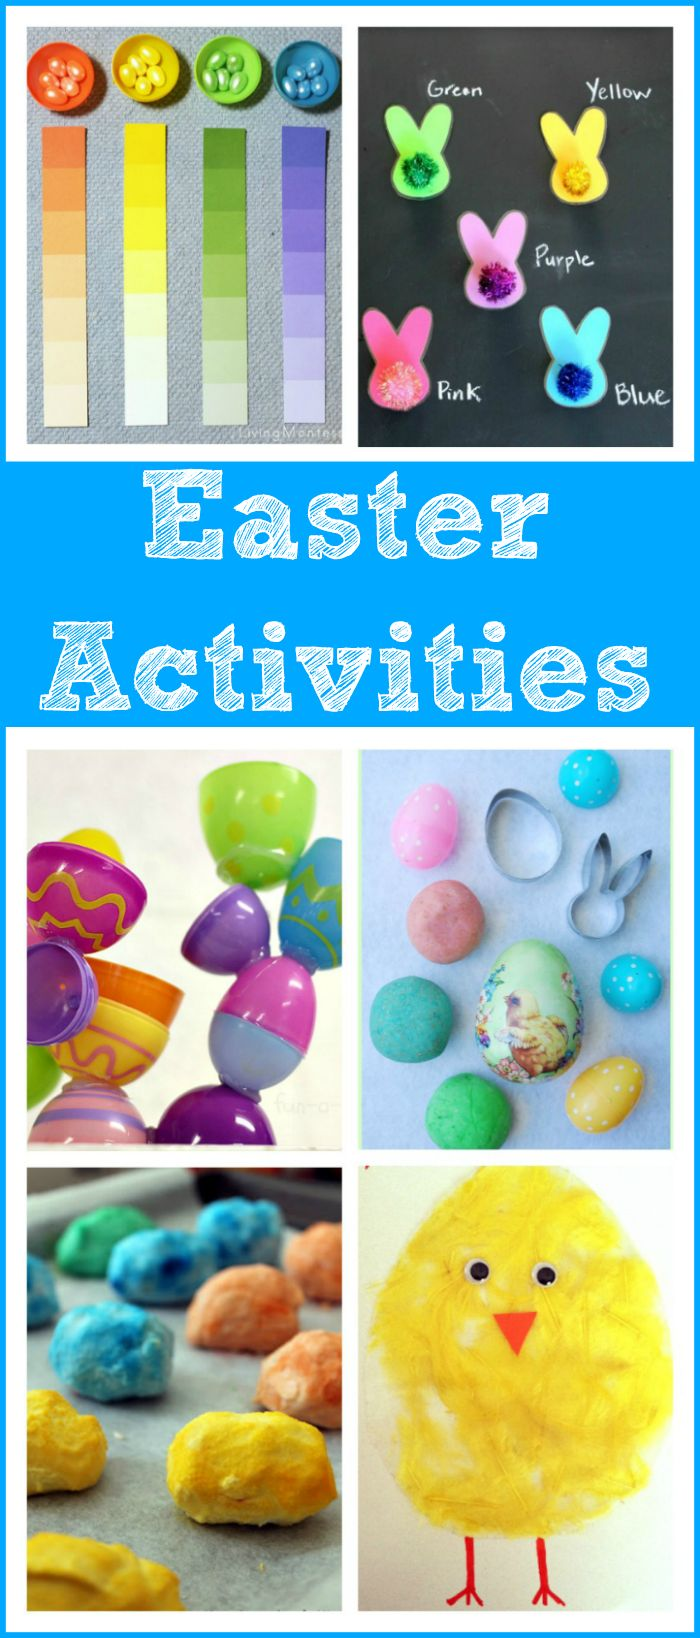 16 Easter activities for toddlers and preschoolers - arts and crafts, math, science, literacy, and sensory play!